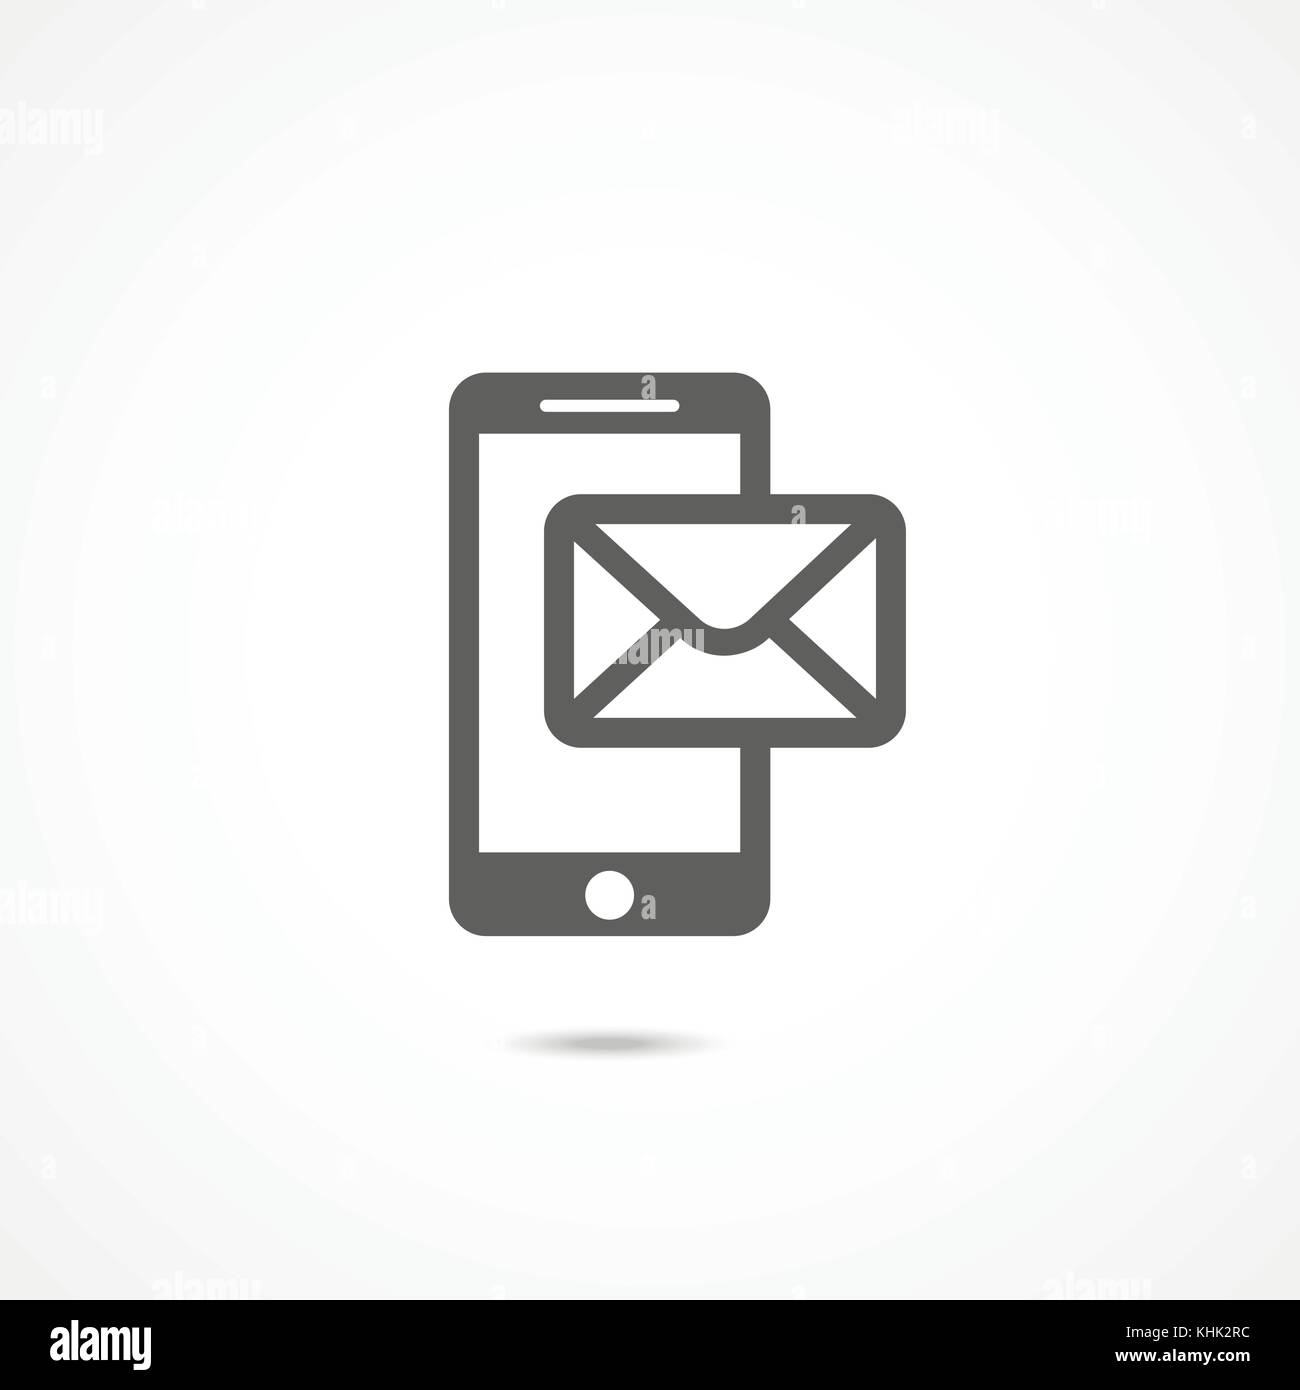 Mobile phone sms icon - Stock Image